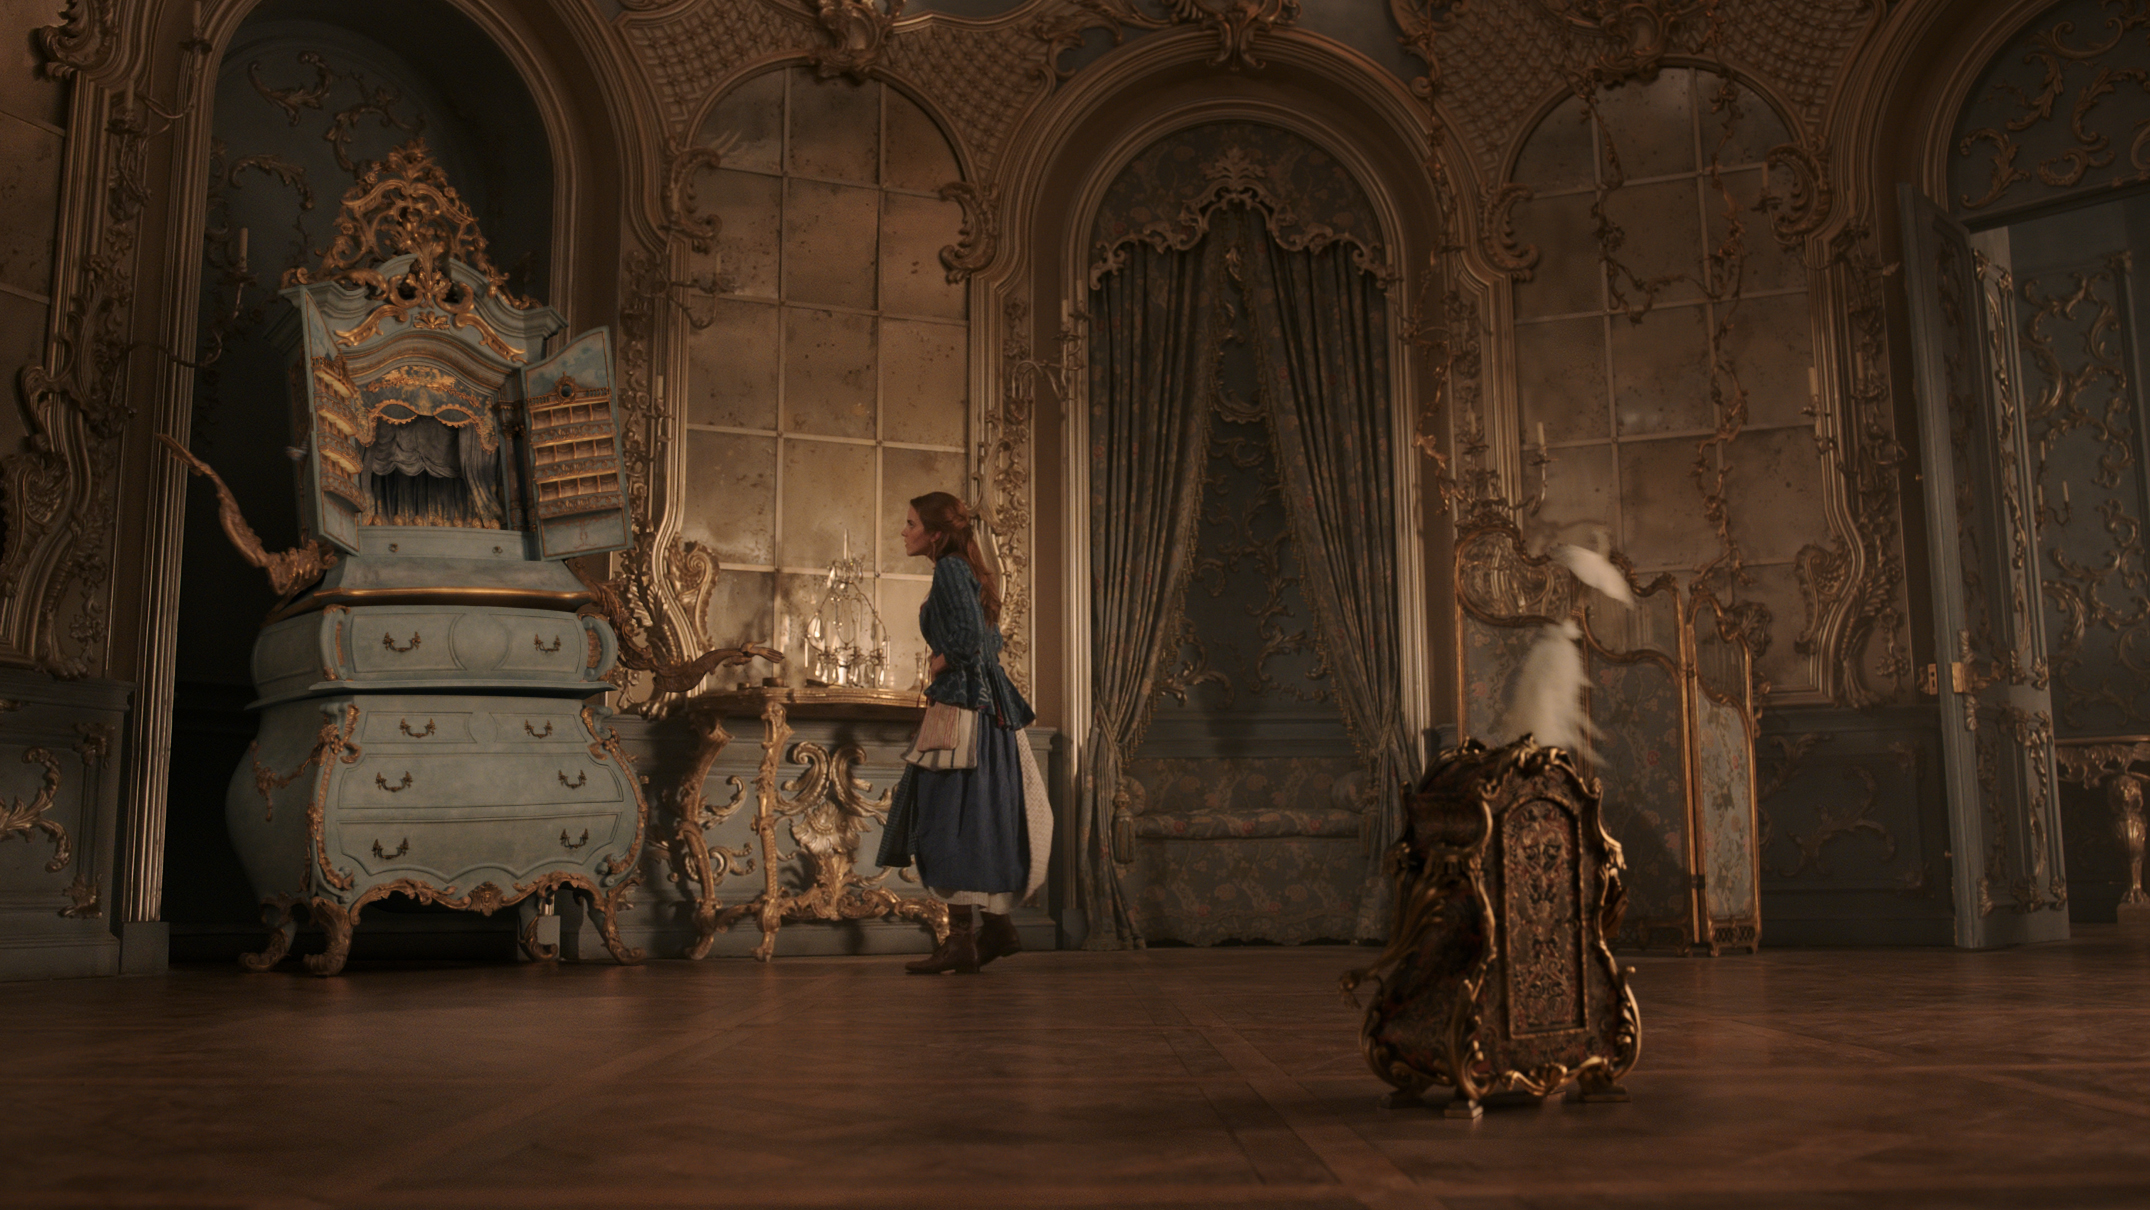 Belle (Emma Watson) learns that the Beast's castle is enchanted in Disney's BEAUTY AND THE BEAST, directed by Bill Condon.